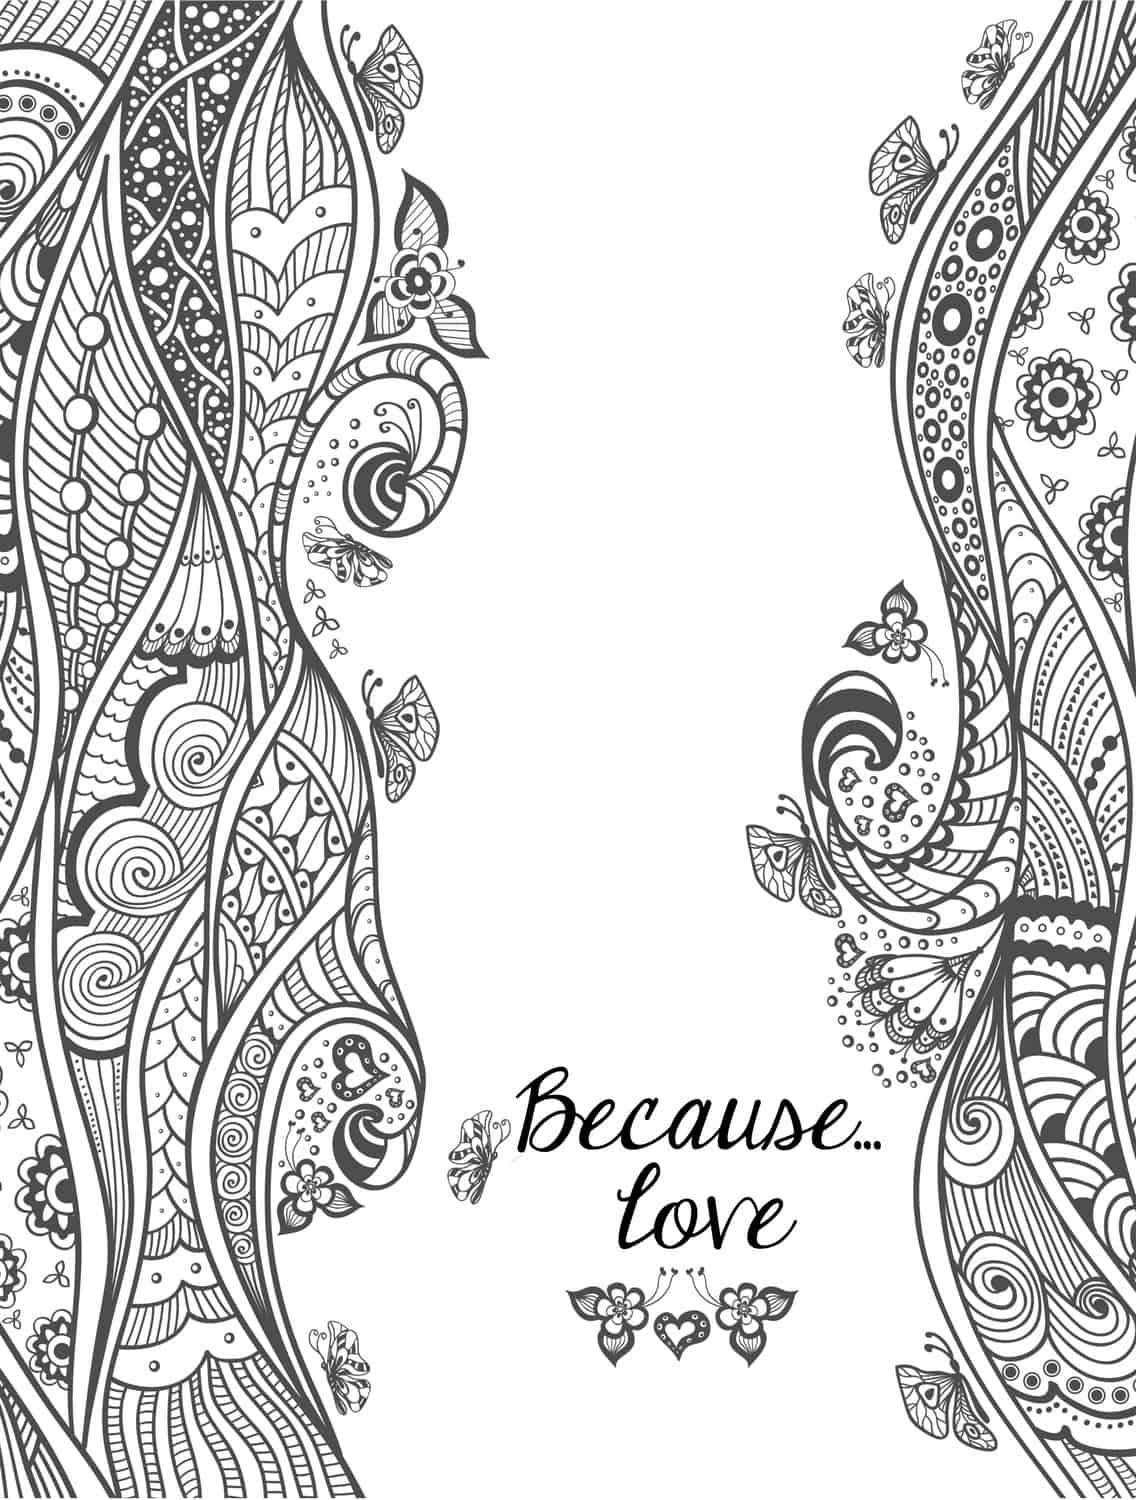 Printable Coloring Pages For Adults Love : Free printable valentines adult coloring pages nerdy